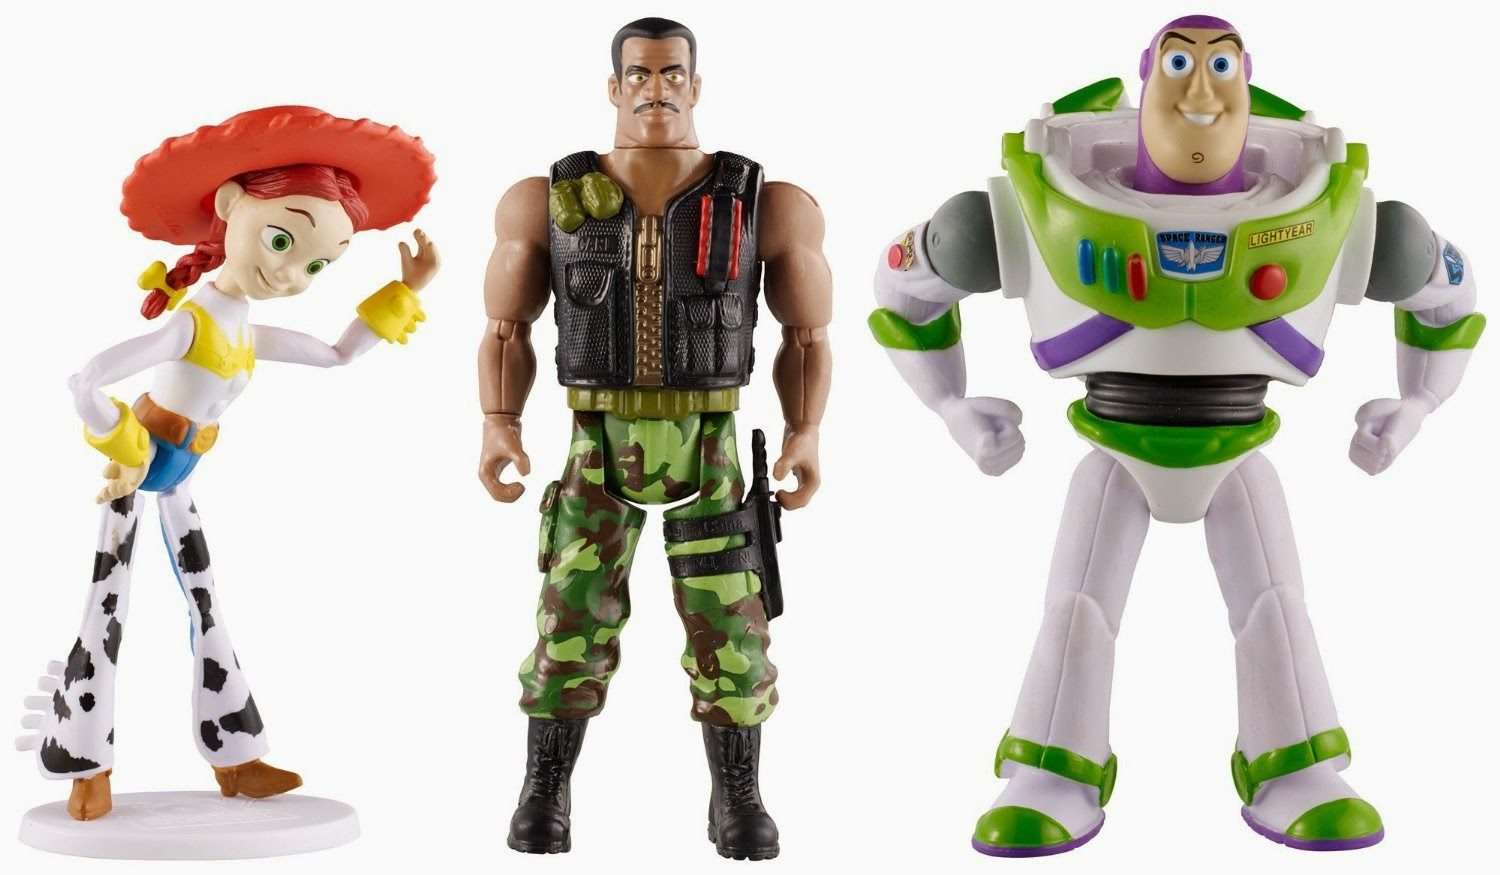 Toy Story Figures : Super punch they made a toy story combat carl figure